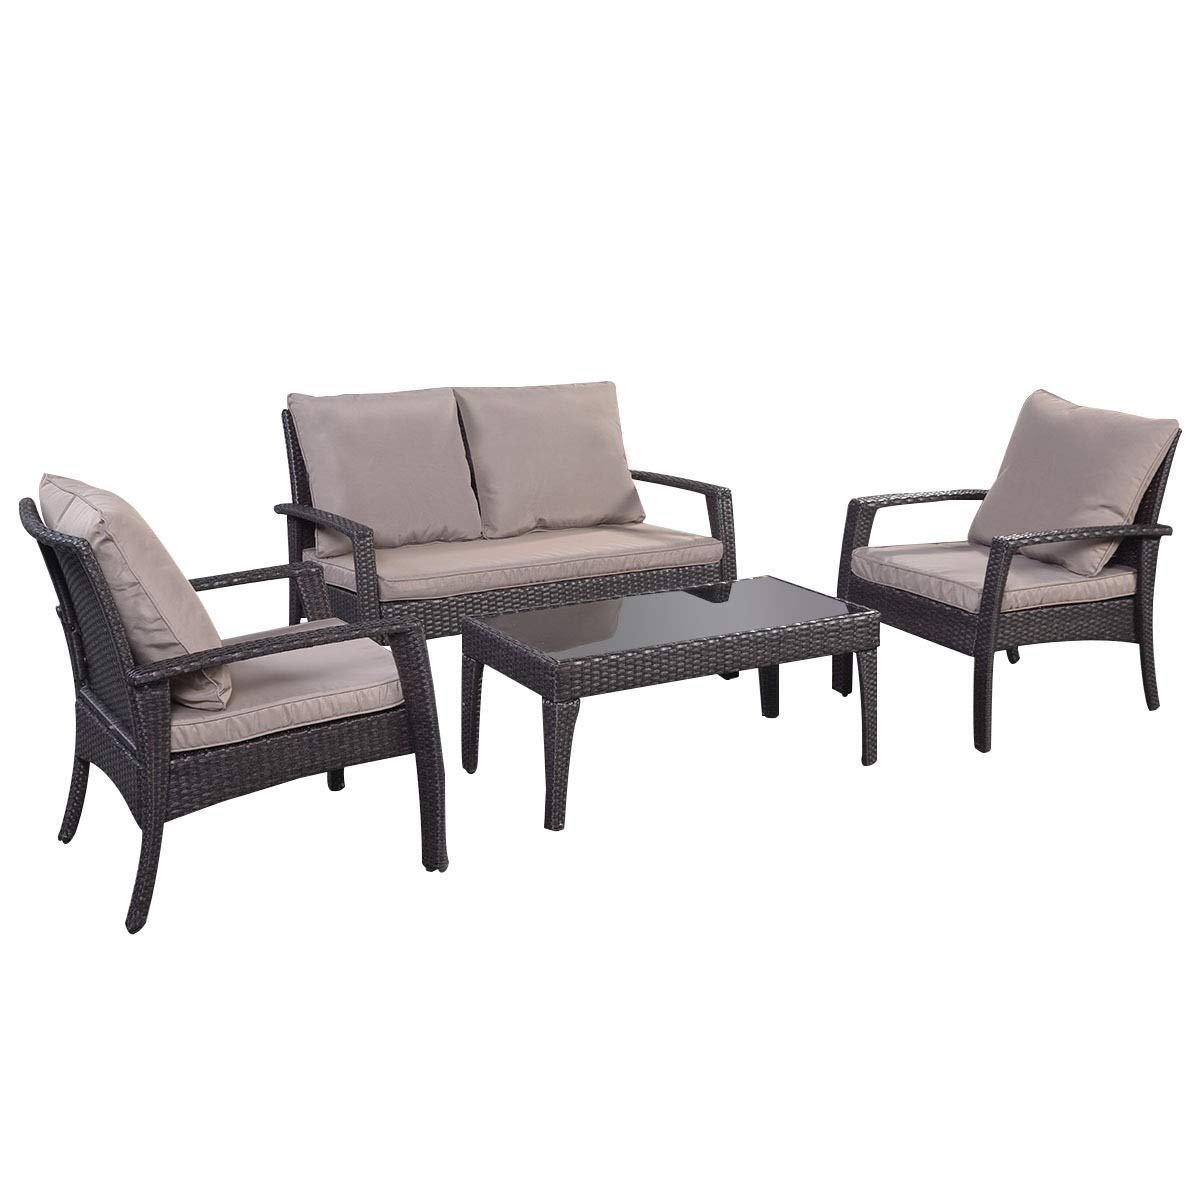 MD Group 4 pcs Wicker Rattan Seat Cushioned Set